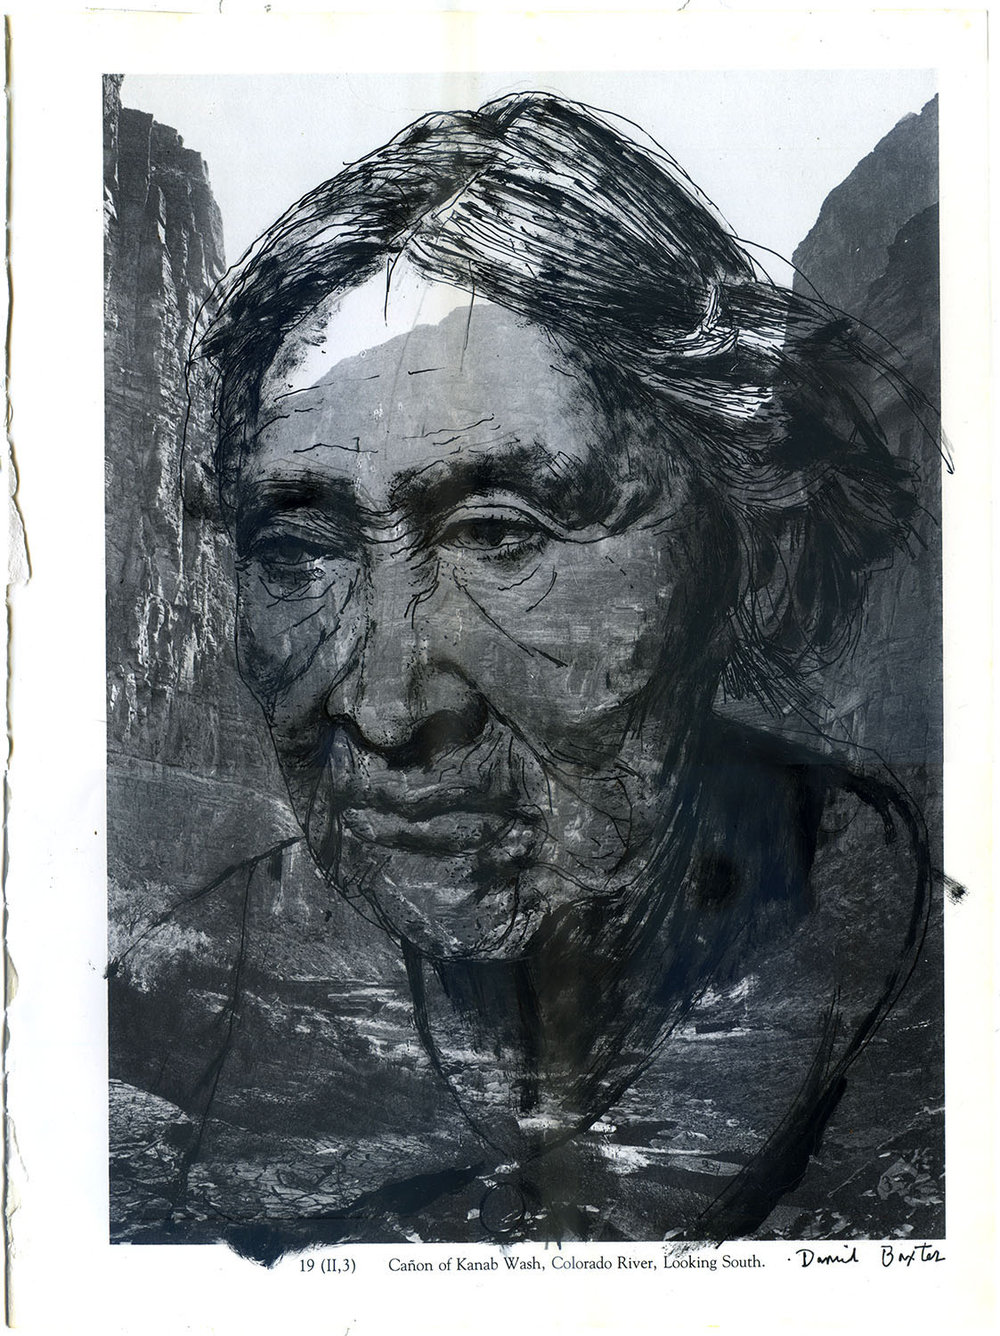 Portrait of a Paiute woman, who's tribe was indigenous to the Kanab Creek, Utah